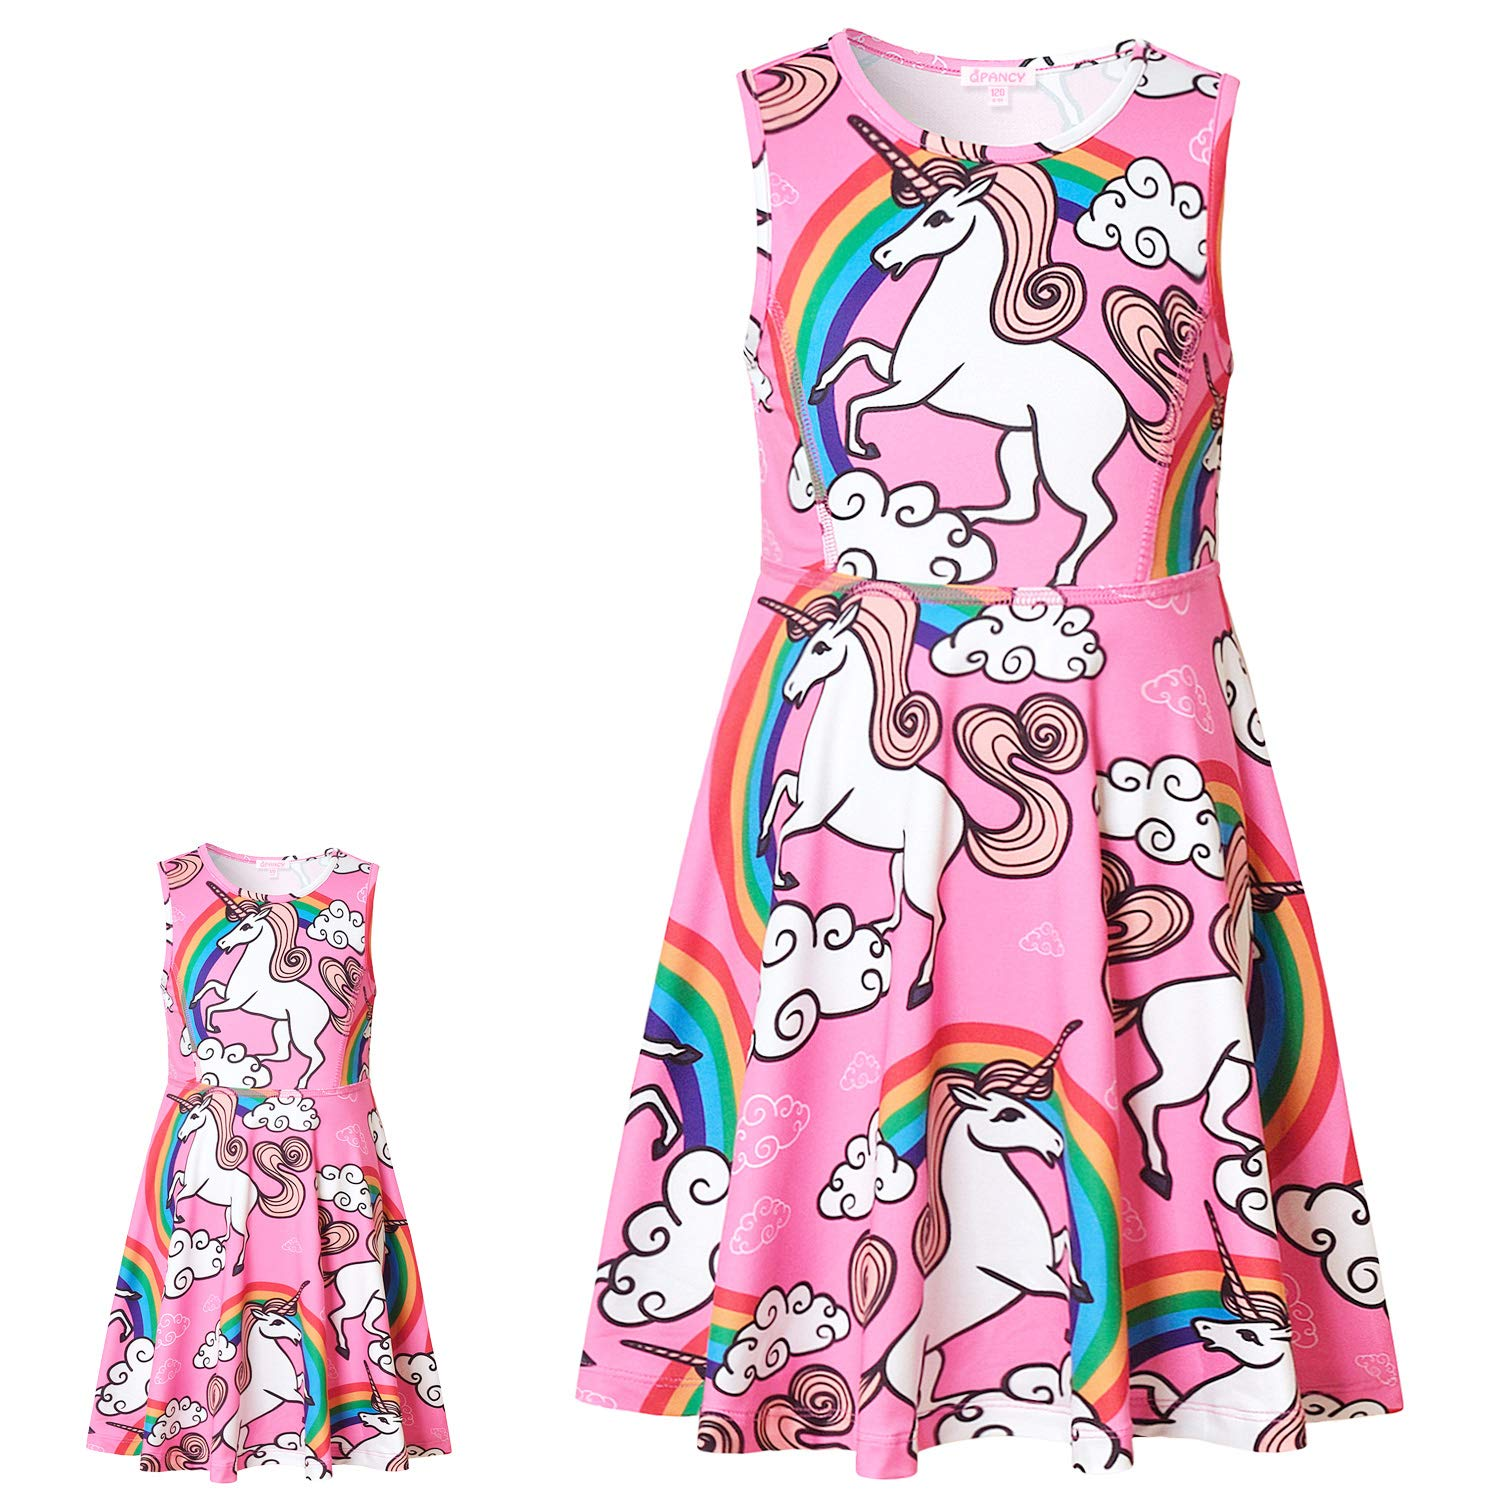 Matching Girls & Doll Dresses Sleeveless Unicorn Outfits Clothes Fits 18' Dolls